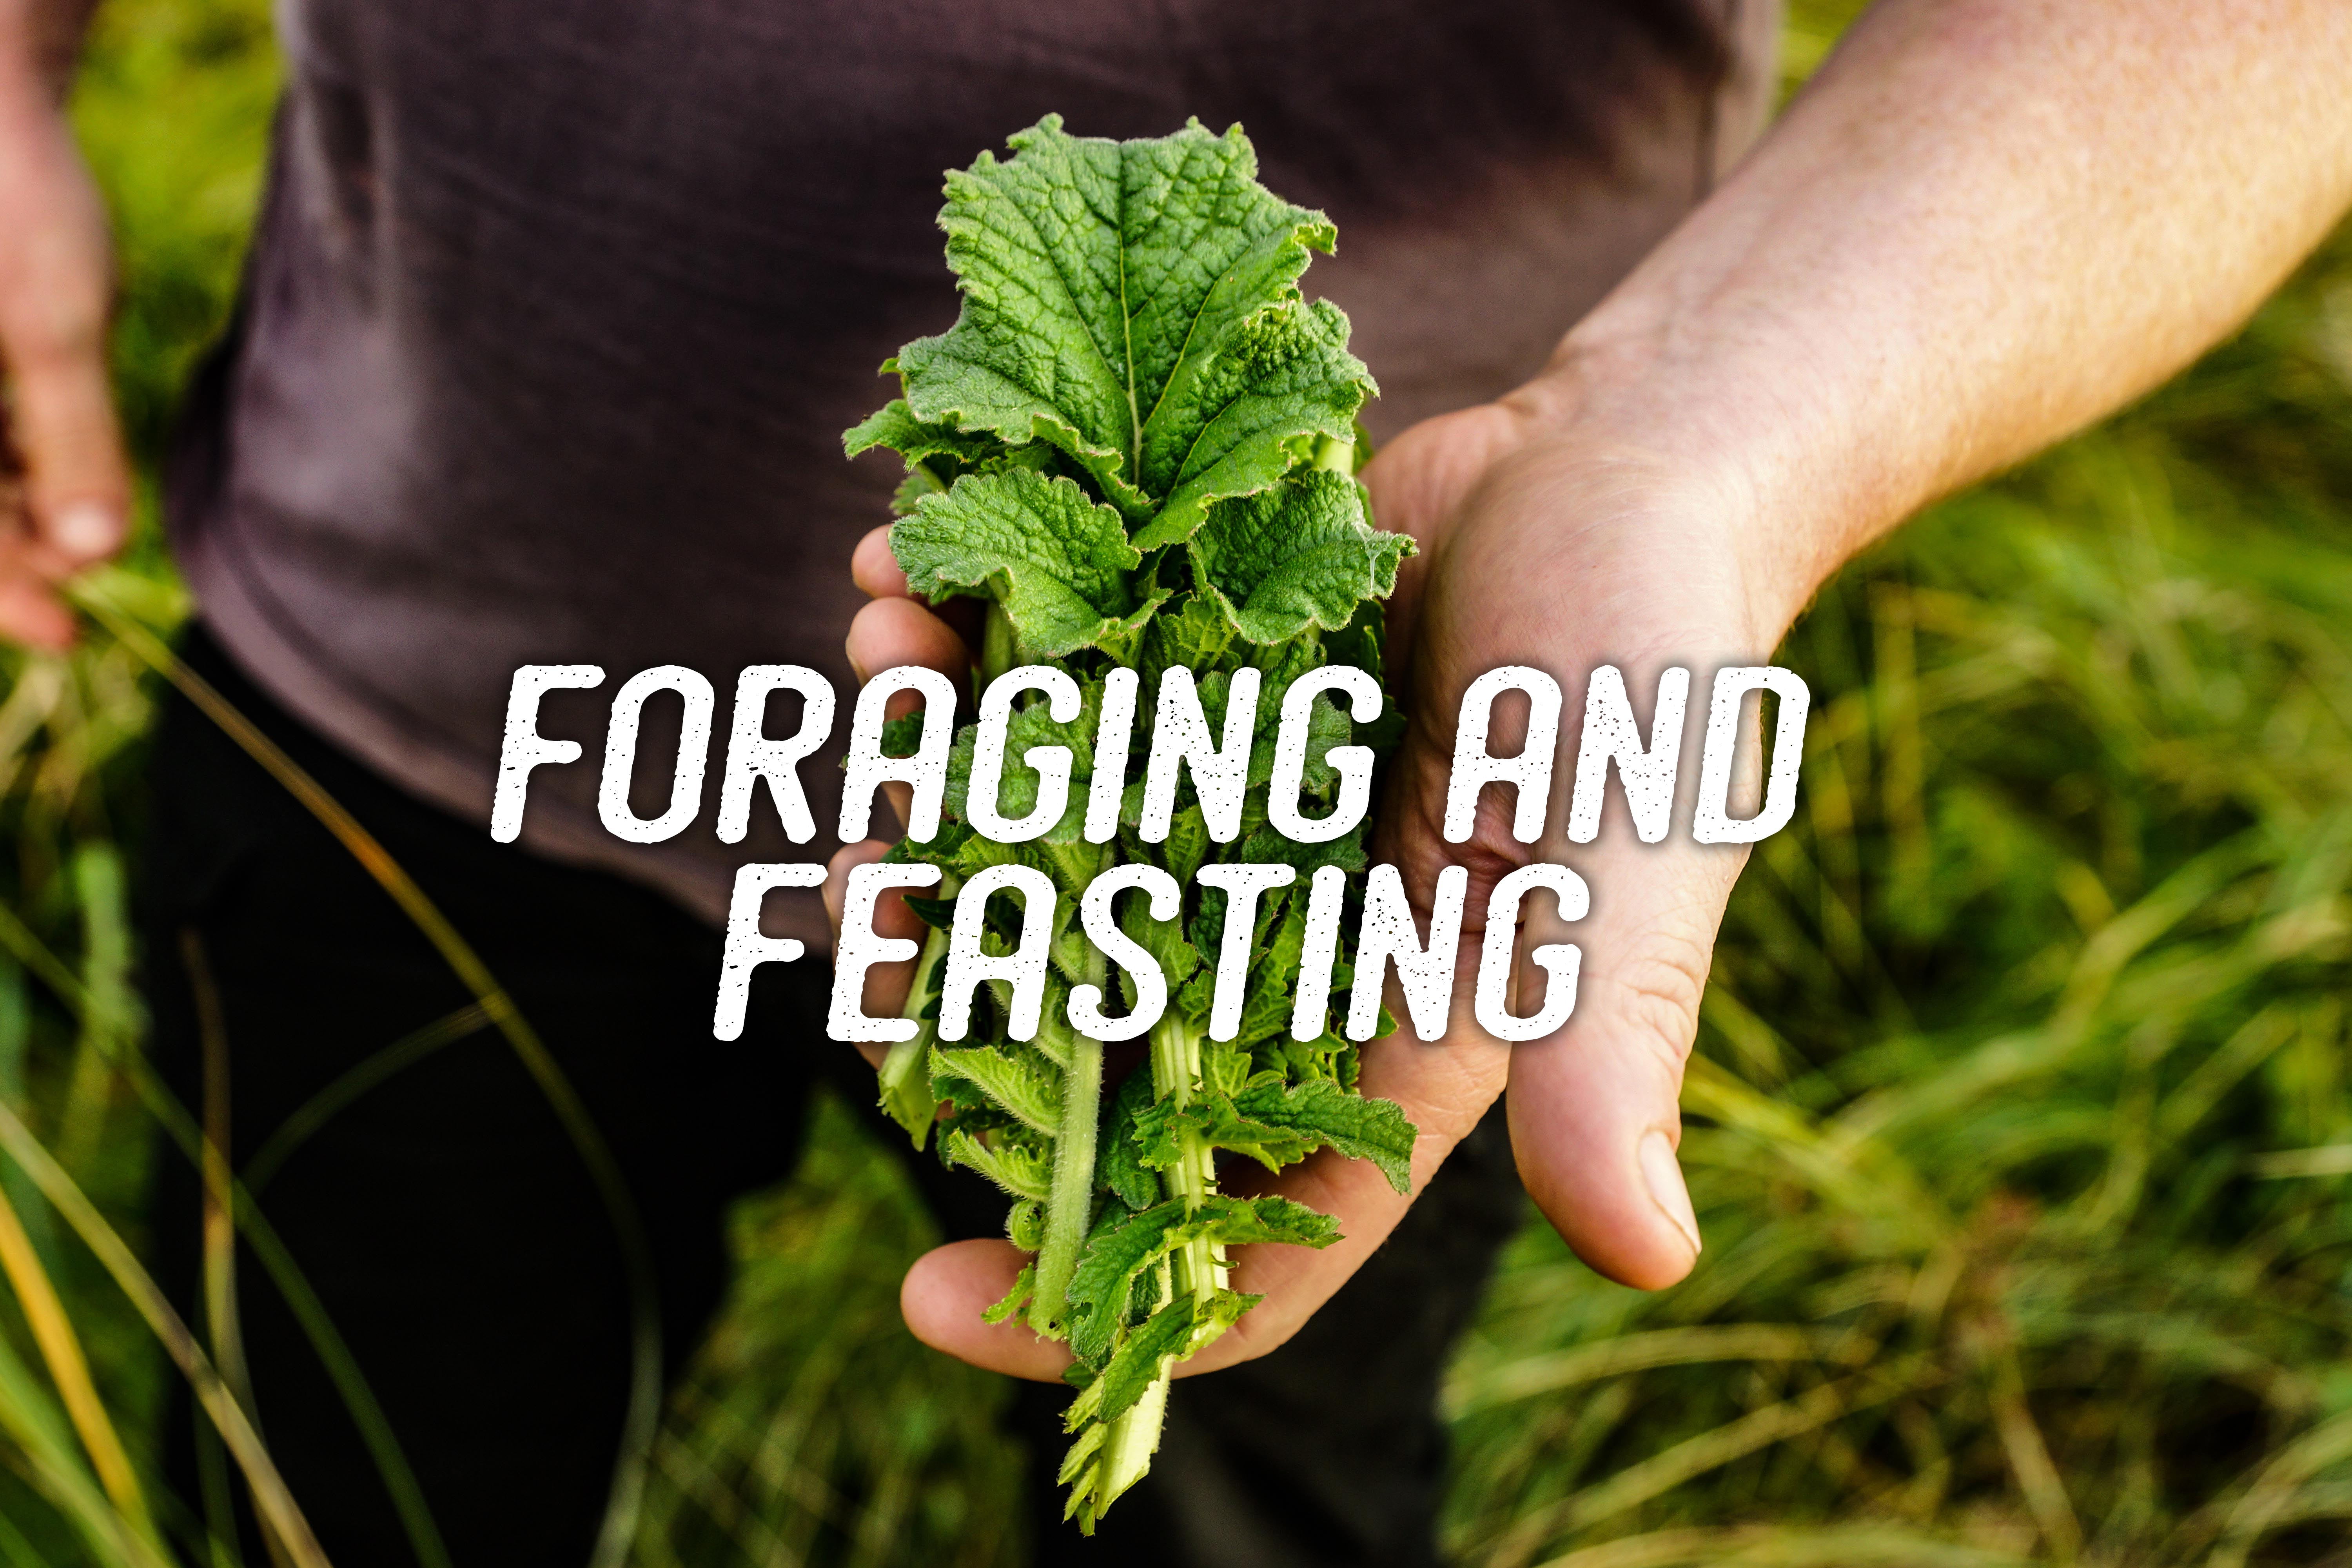 Foraging and Feasting in Wales